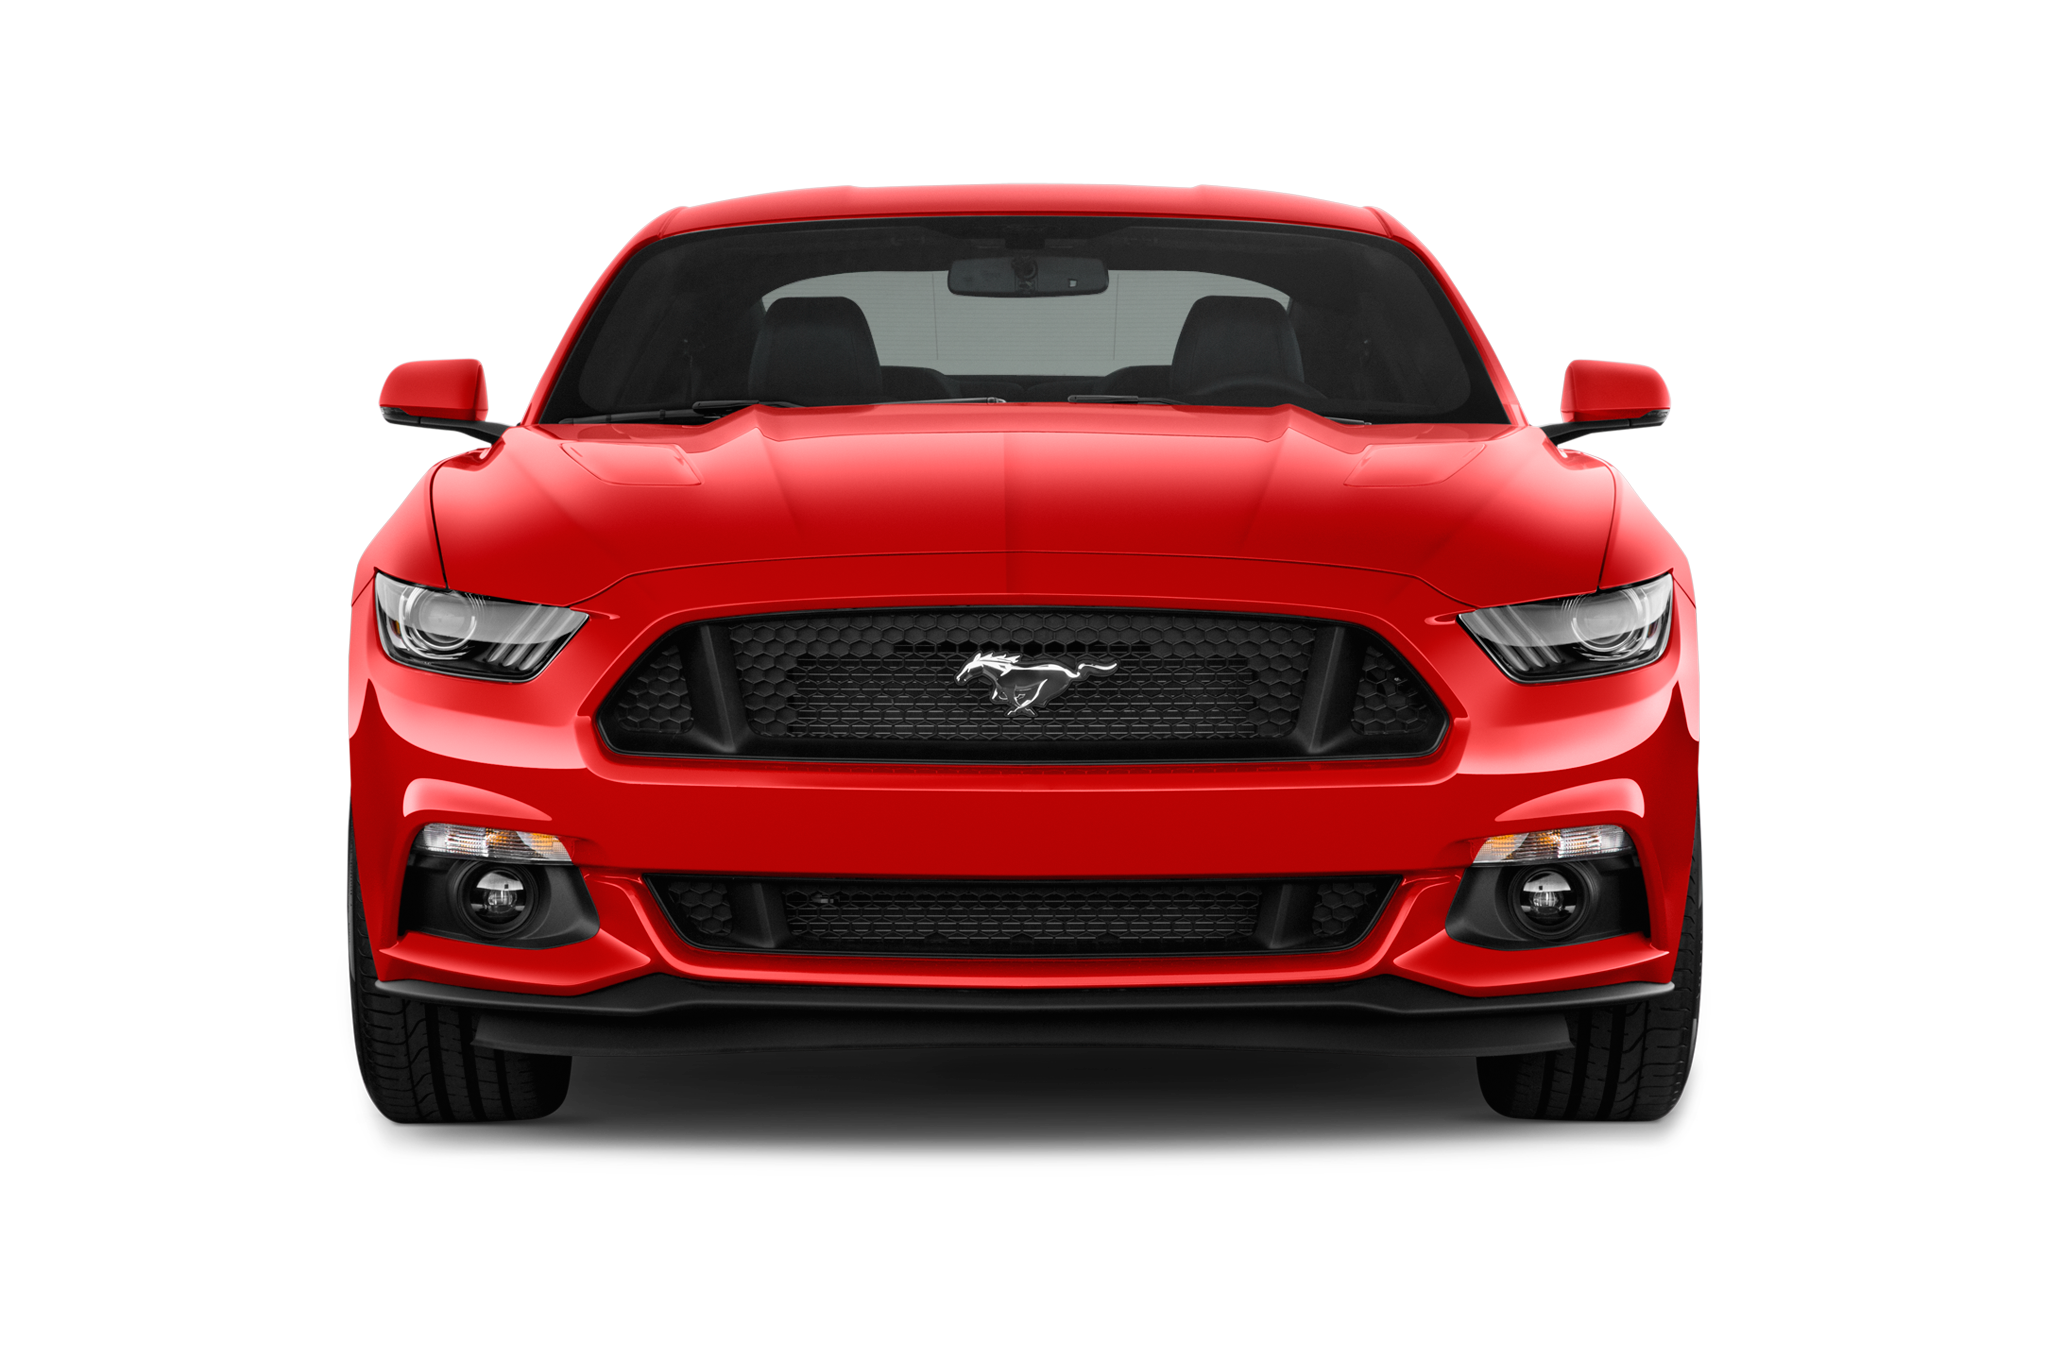 2017 Ford Mustang Gt Premium Coupe Front View Png 2048 1360 Ford Mustang 2015 Ford Mustang Mustang